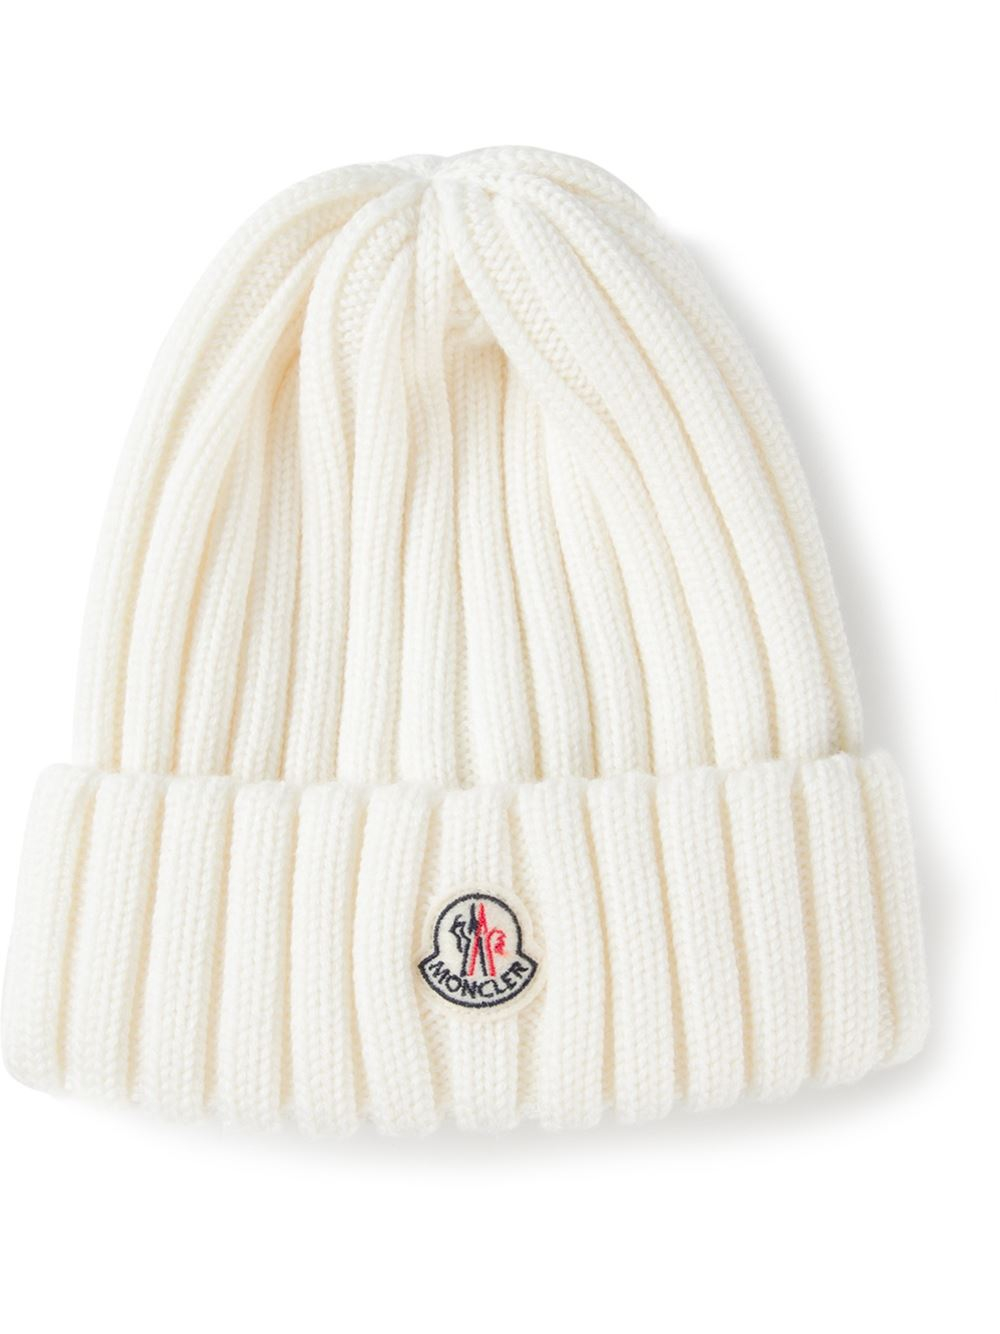 Lyst - Moncler Ribbed Beanie in White 2526bf0ab15